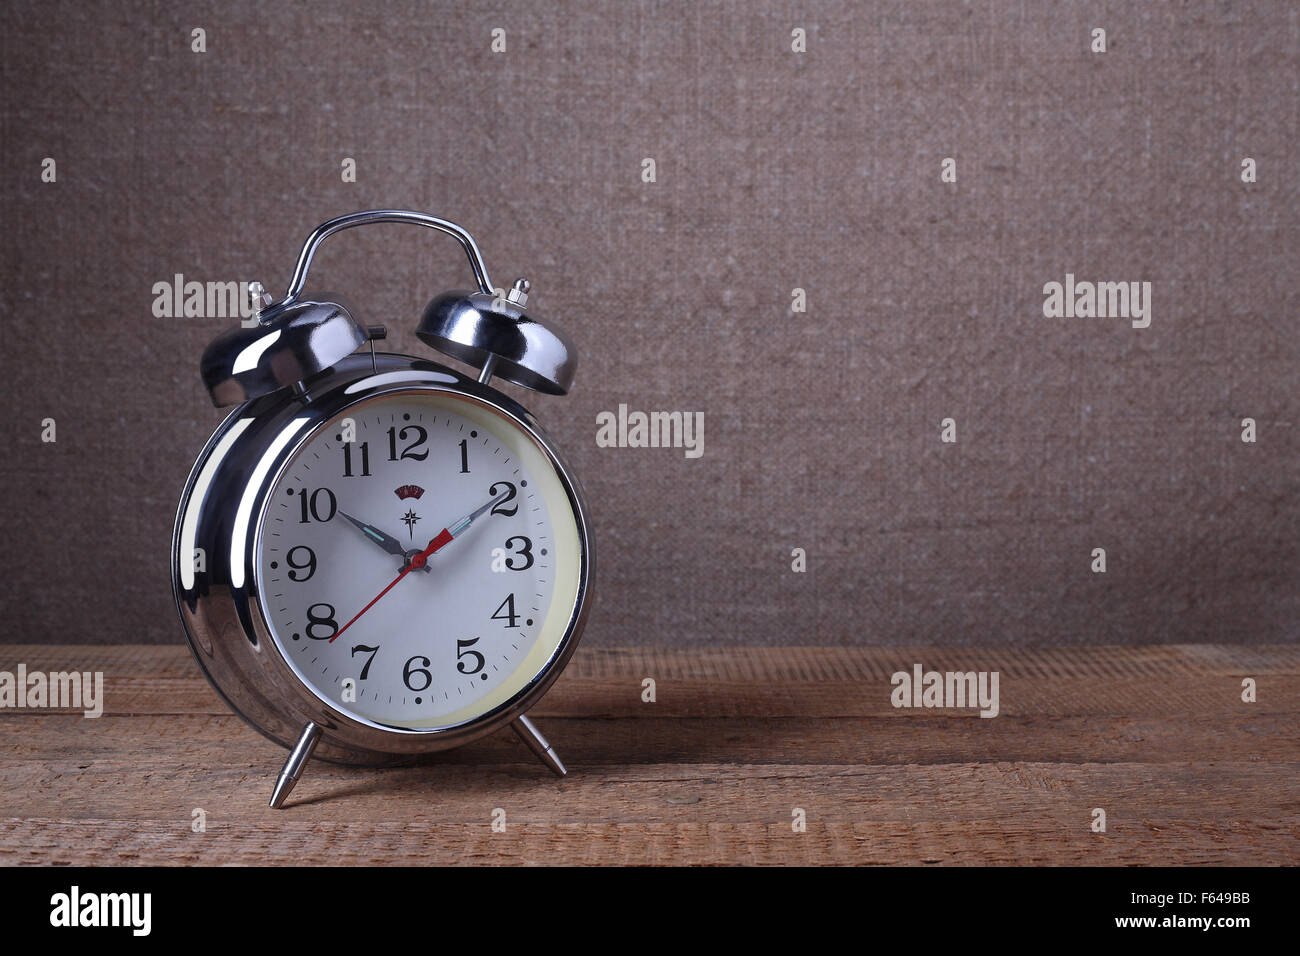 Vintage old alarm clock on sackings and a wooden background. Stock Photo